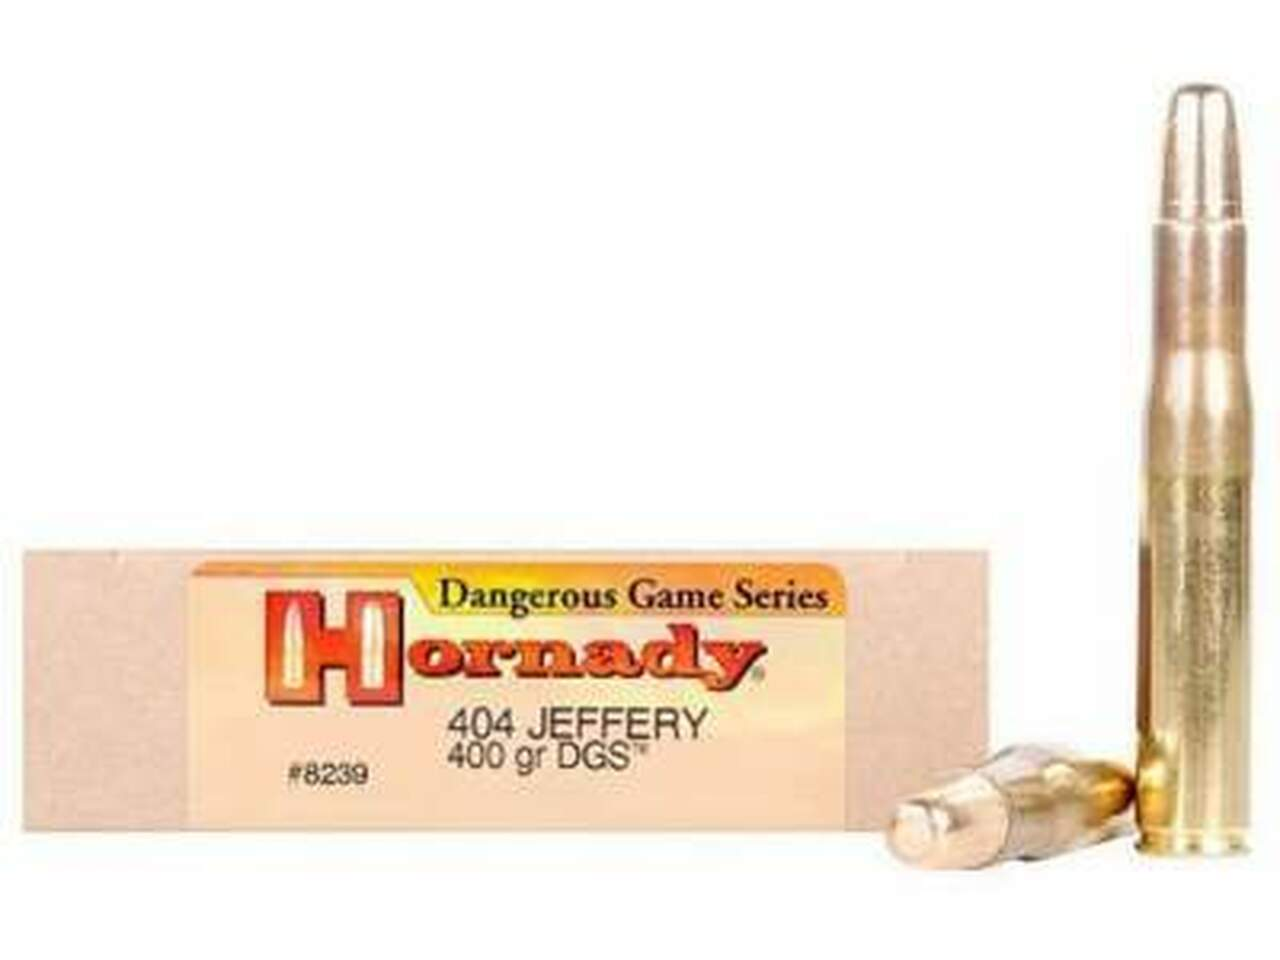 404 Jeffery Ammo